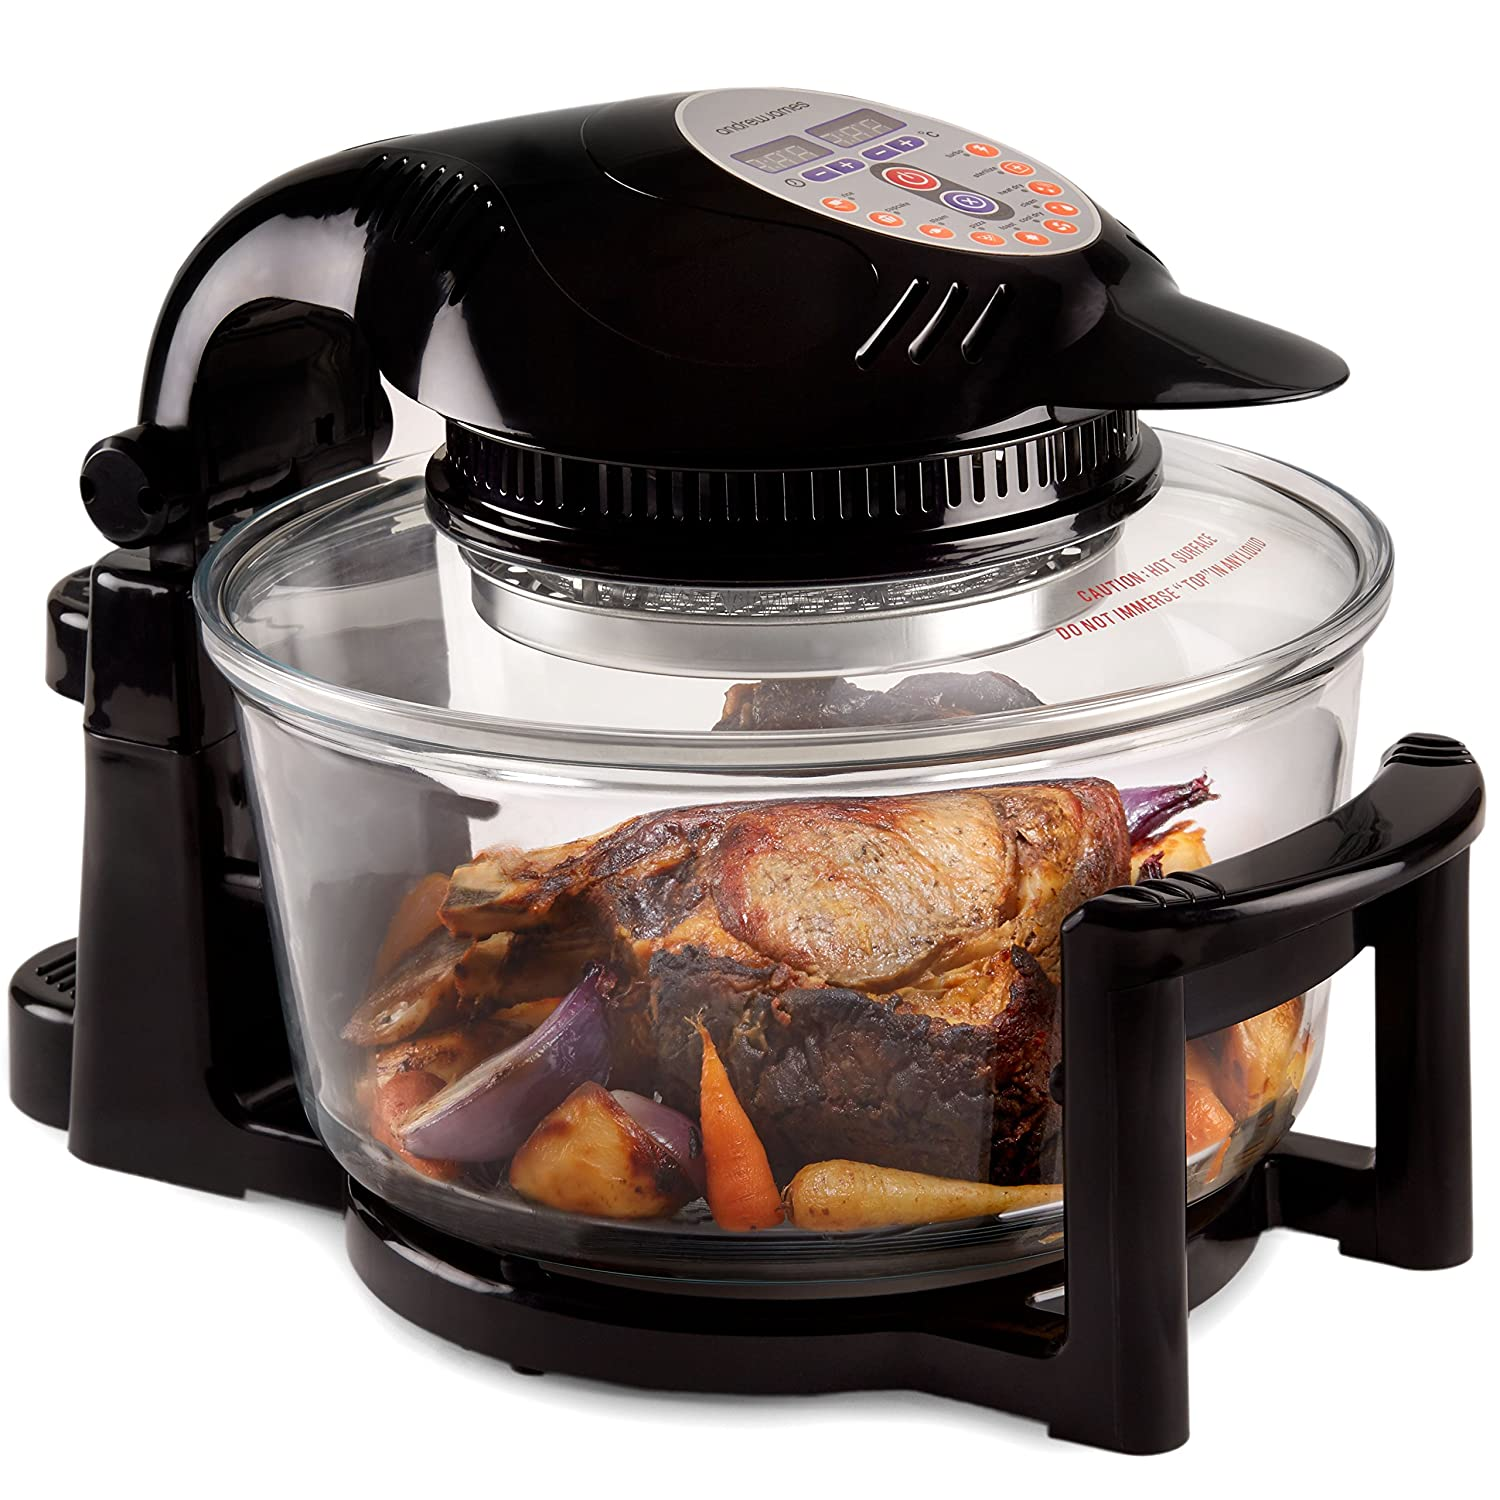 This Andrew James 12 litre halogen cooker works brilliantly and looks stylish.